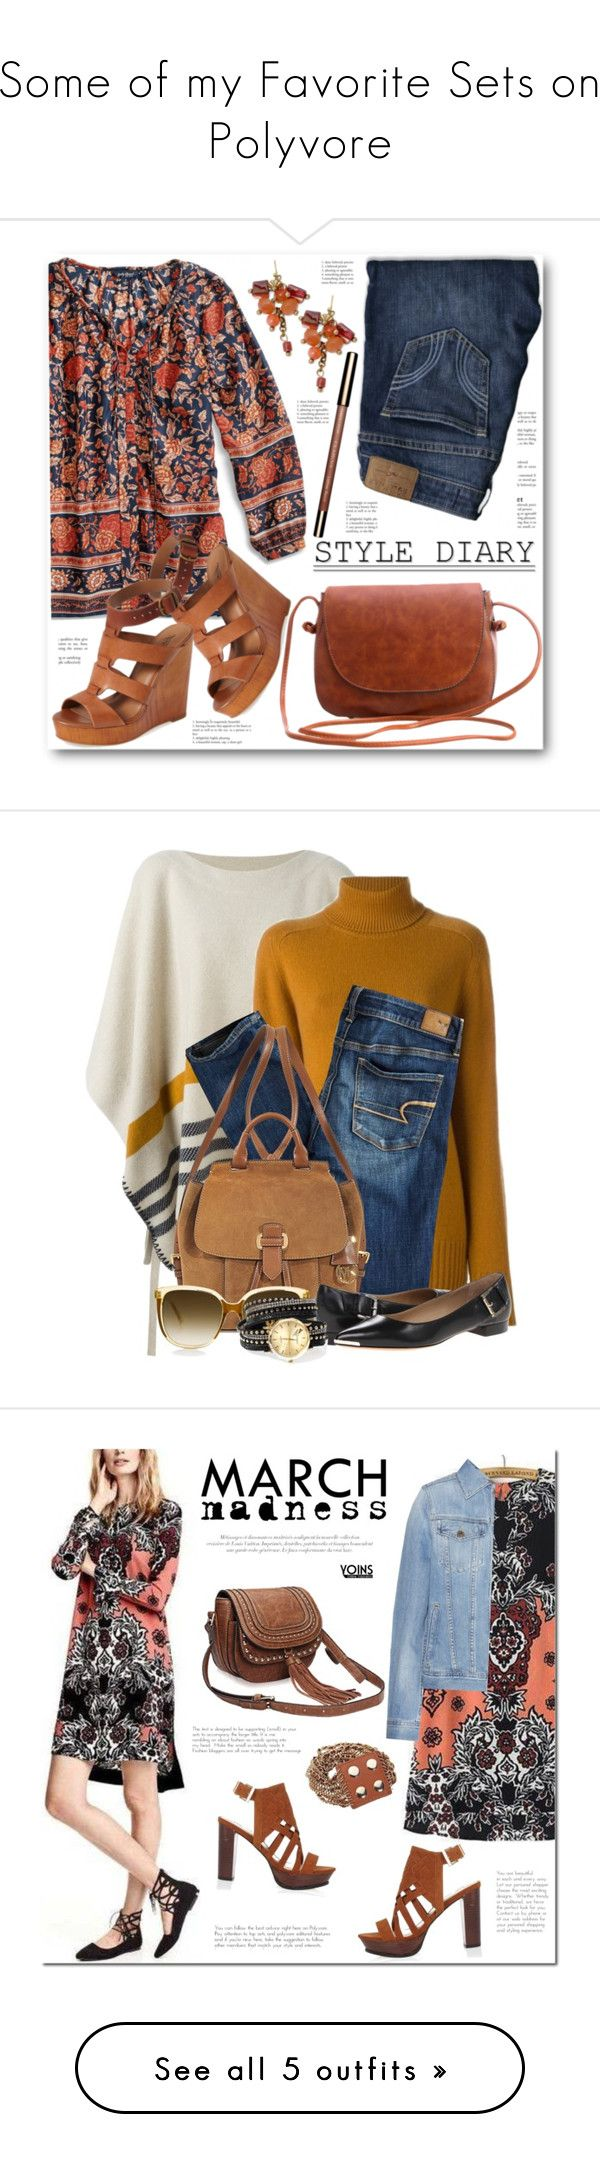 Some of my Favorite Sets on Polyvore by annabu on Polyvore featuring Lucky Brand, Hollister Co., Clarins, Chloé, American Eagle Outfitters, MICHAEL Michael Kors, Michael Kors, AG Adriano Goldschmied, River Island and vintage